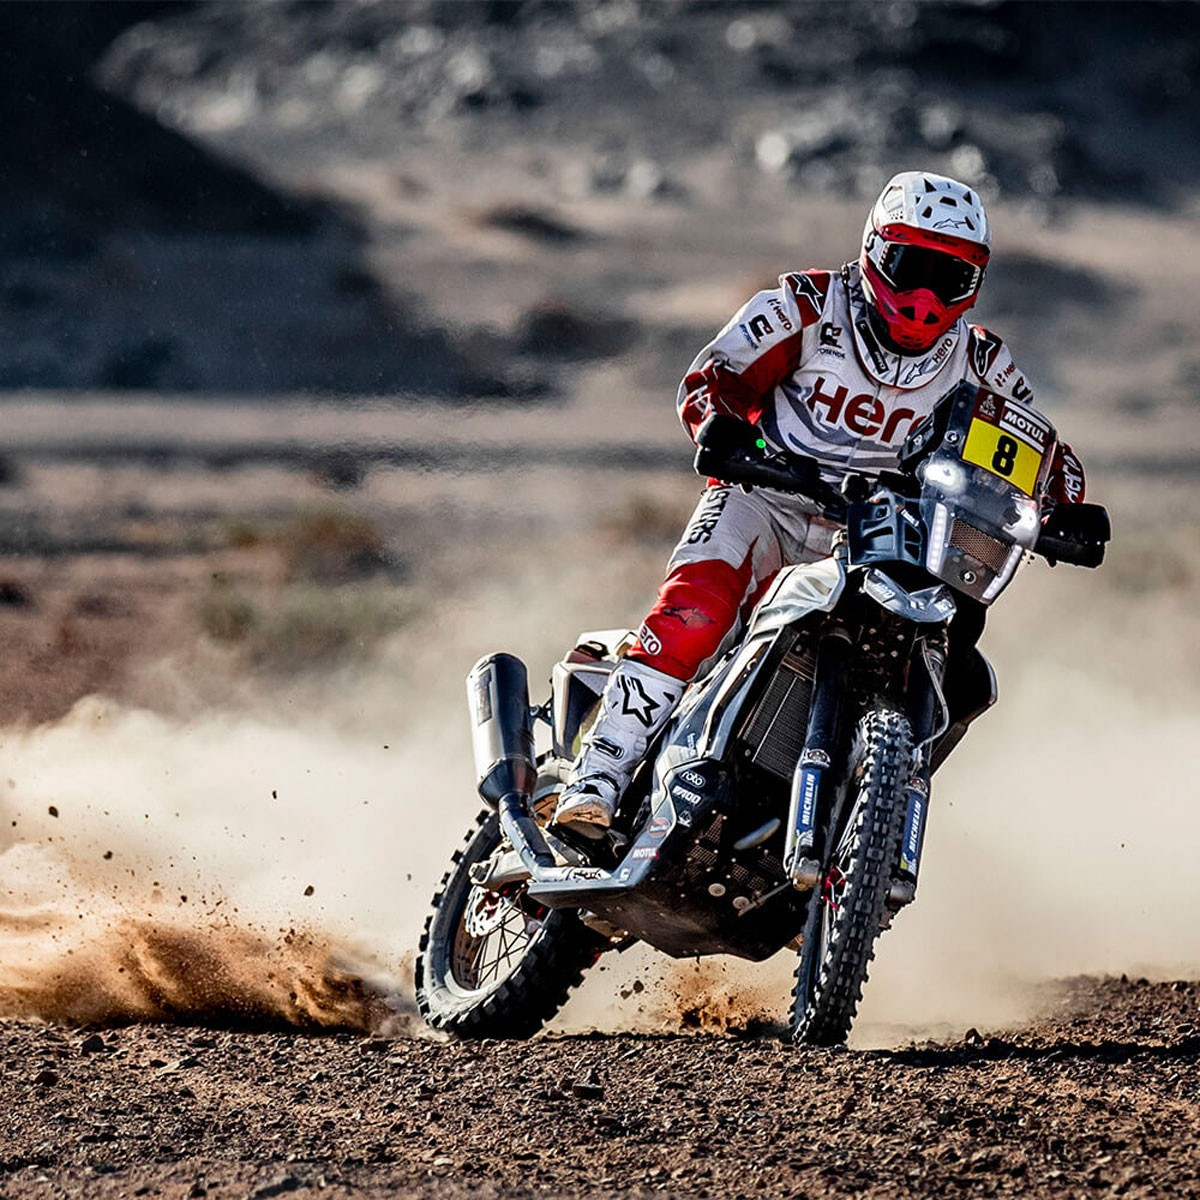 Photo of Sunderland wins Dakar's fourth stage on motorcycles, Paulo Gonçalves was 5th